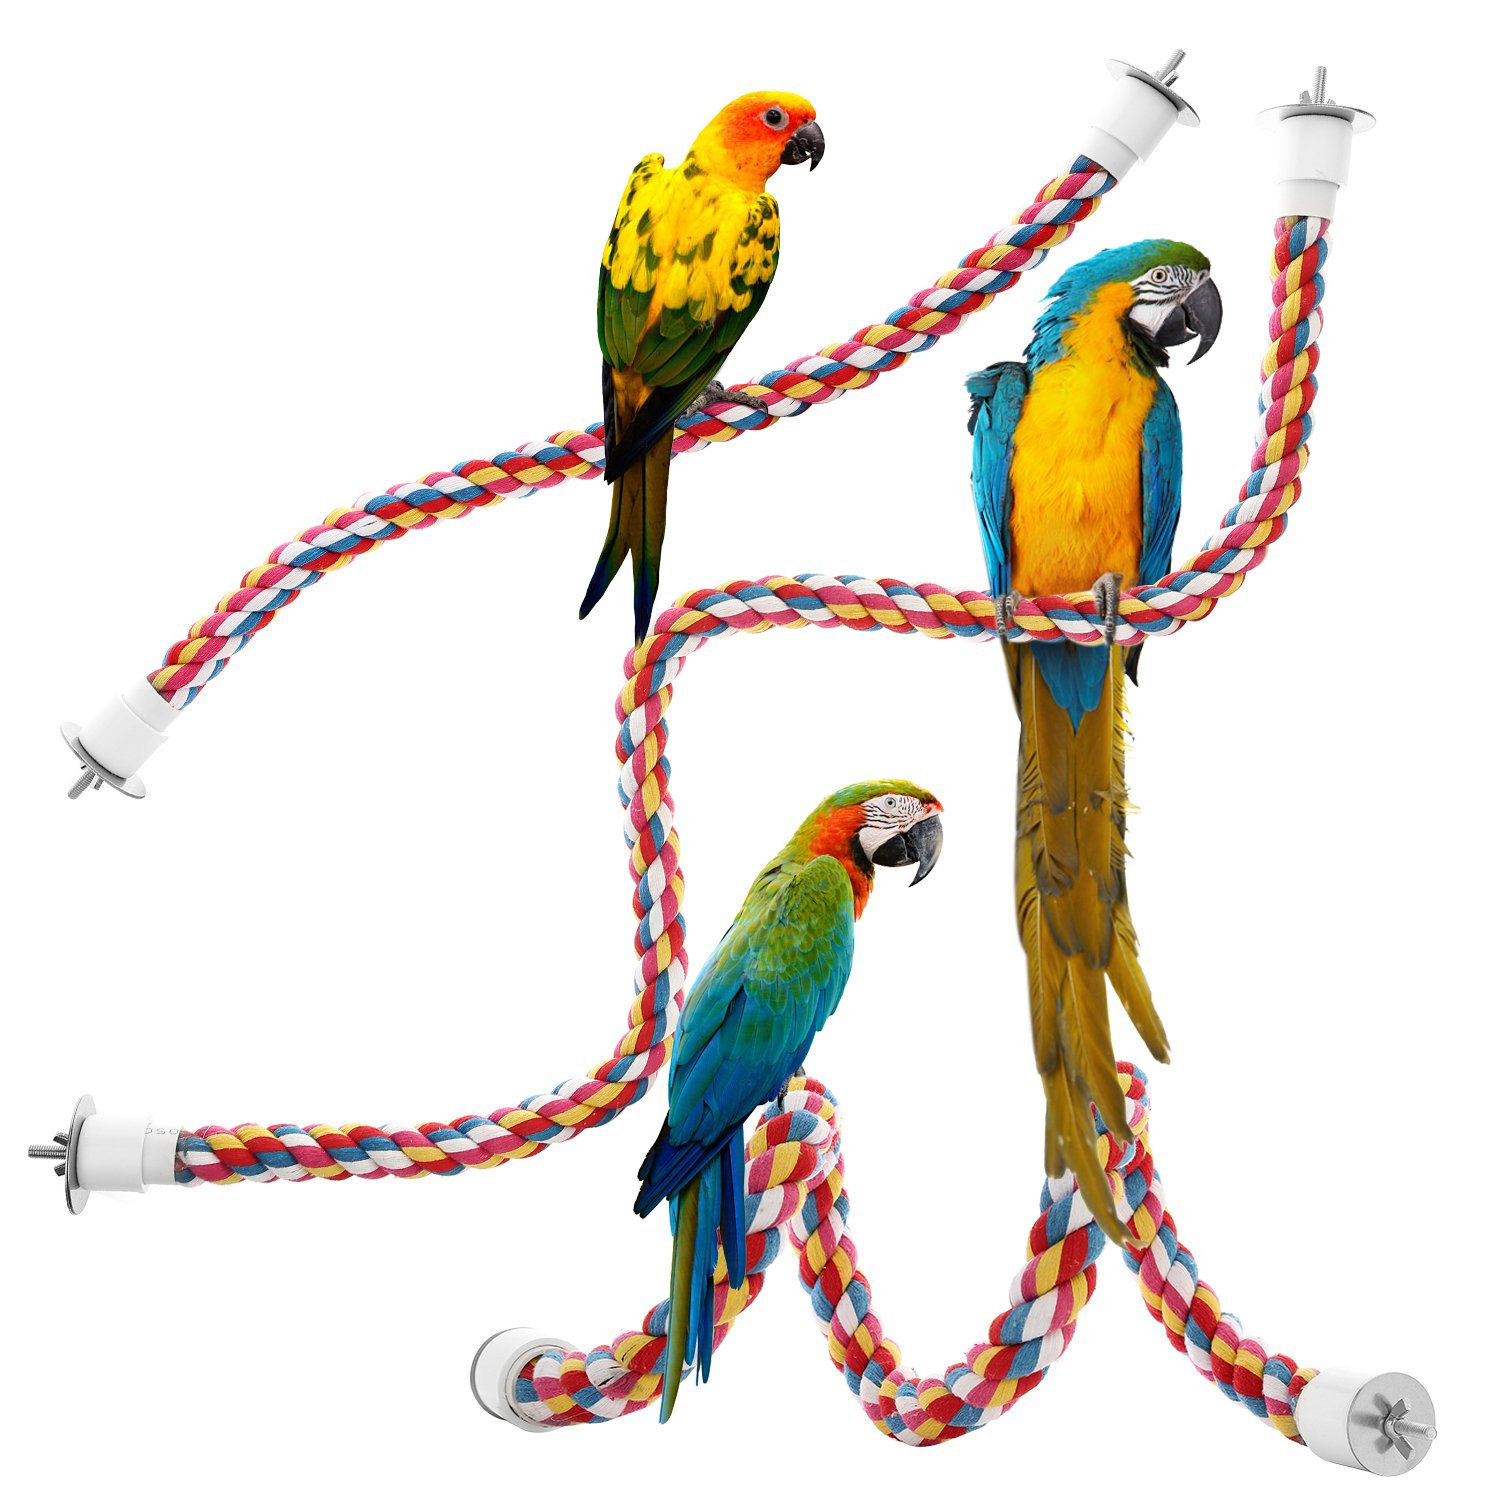 Jusney Bird Rope Perches Parrot Toys 21 Inches Diagram Page 1 Bungee Toy Pet Supplies